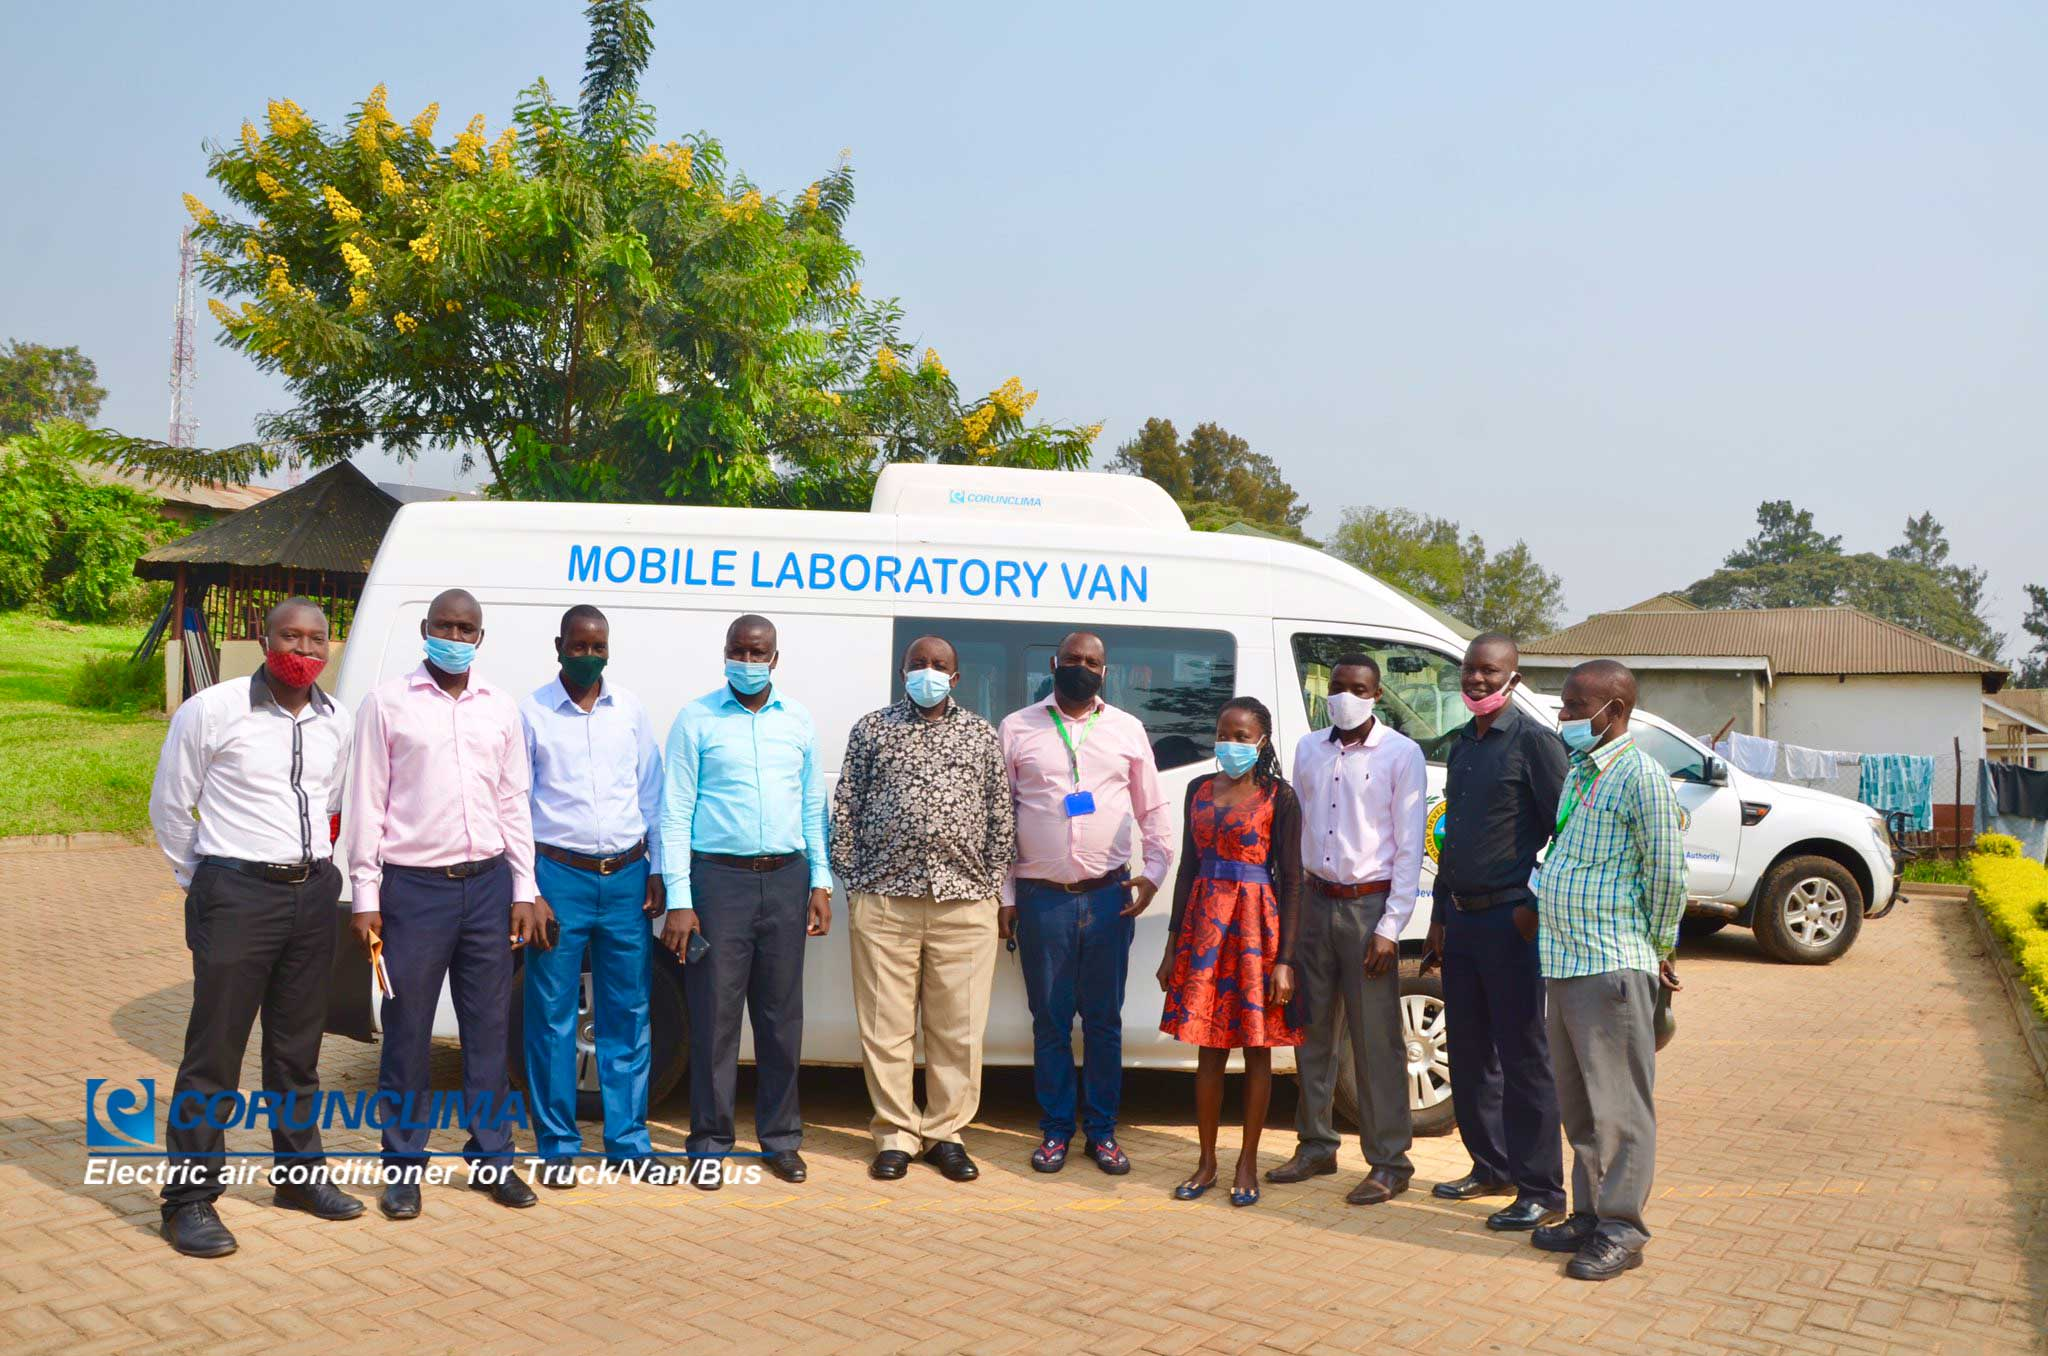 all-electric air conditioners for van  installed on Mobile Laboratory Van in Uganda